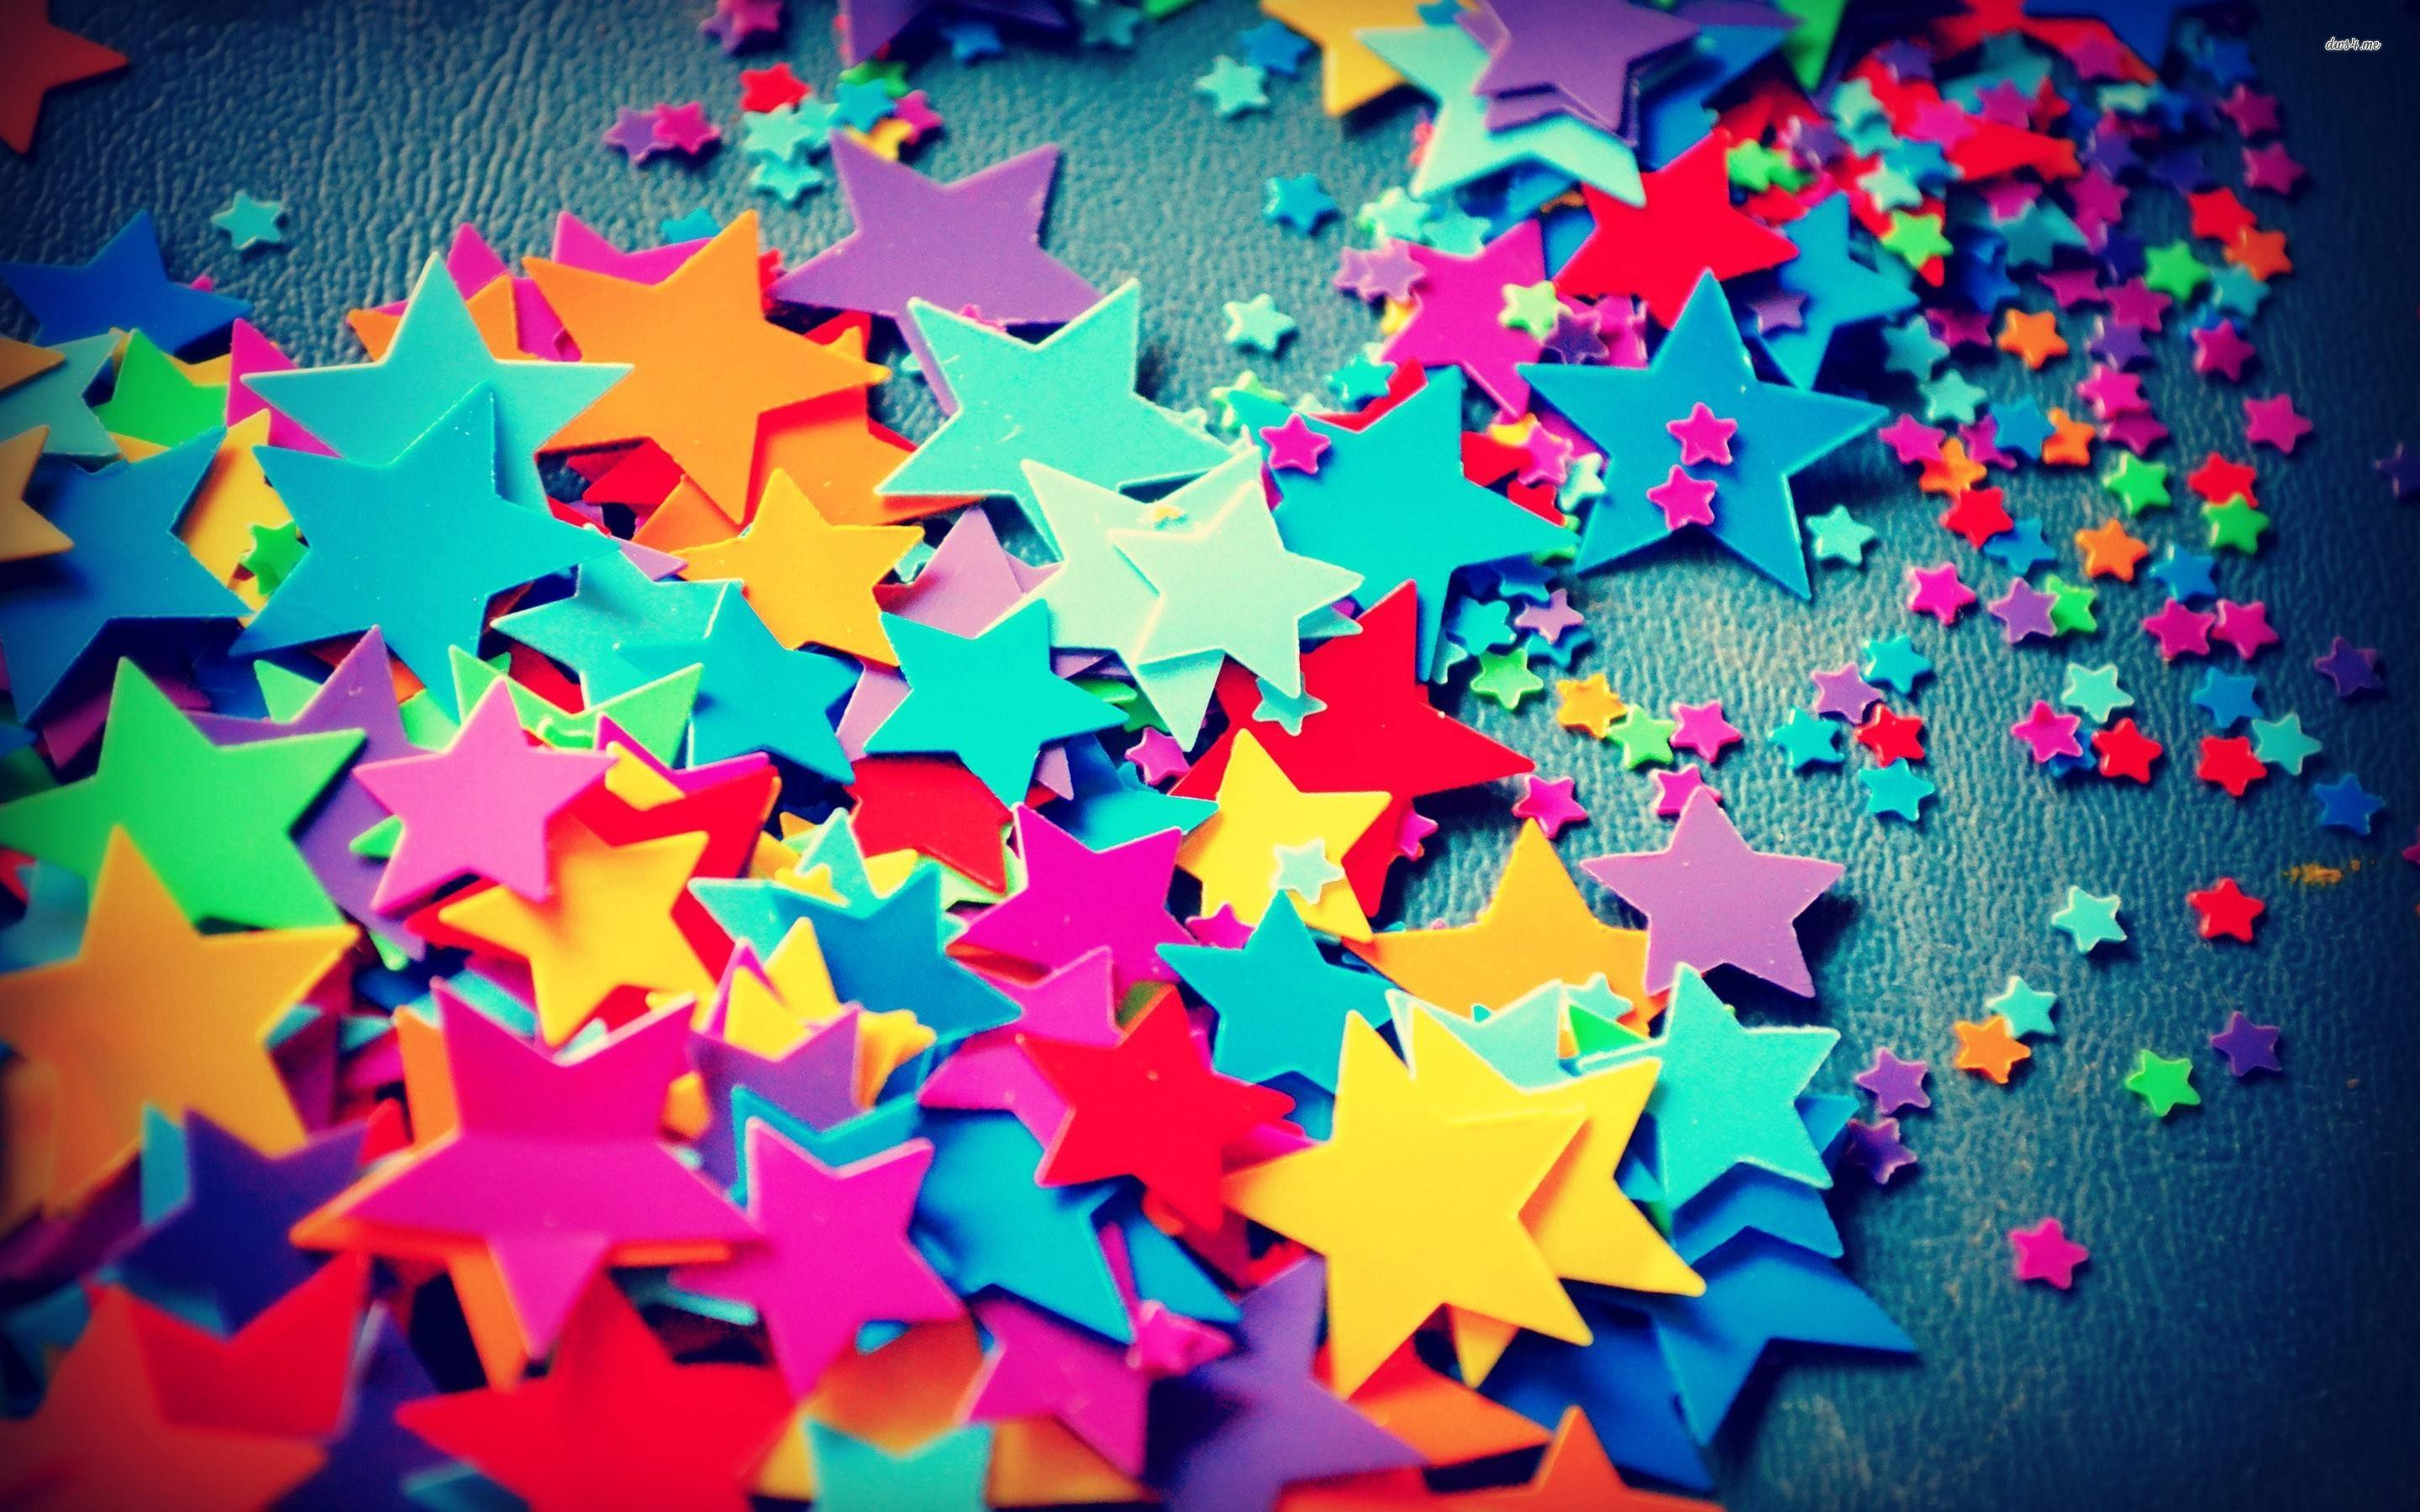 Colorful star wallpapers wallpaper cave for Colourful wallpaper for walls